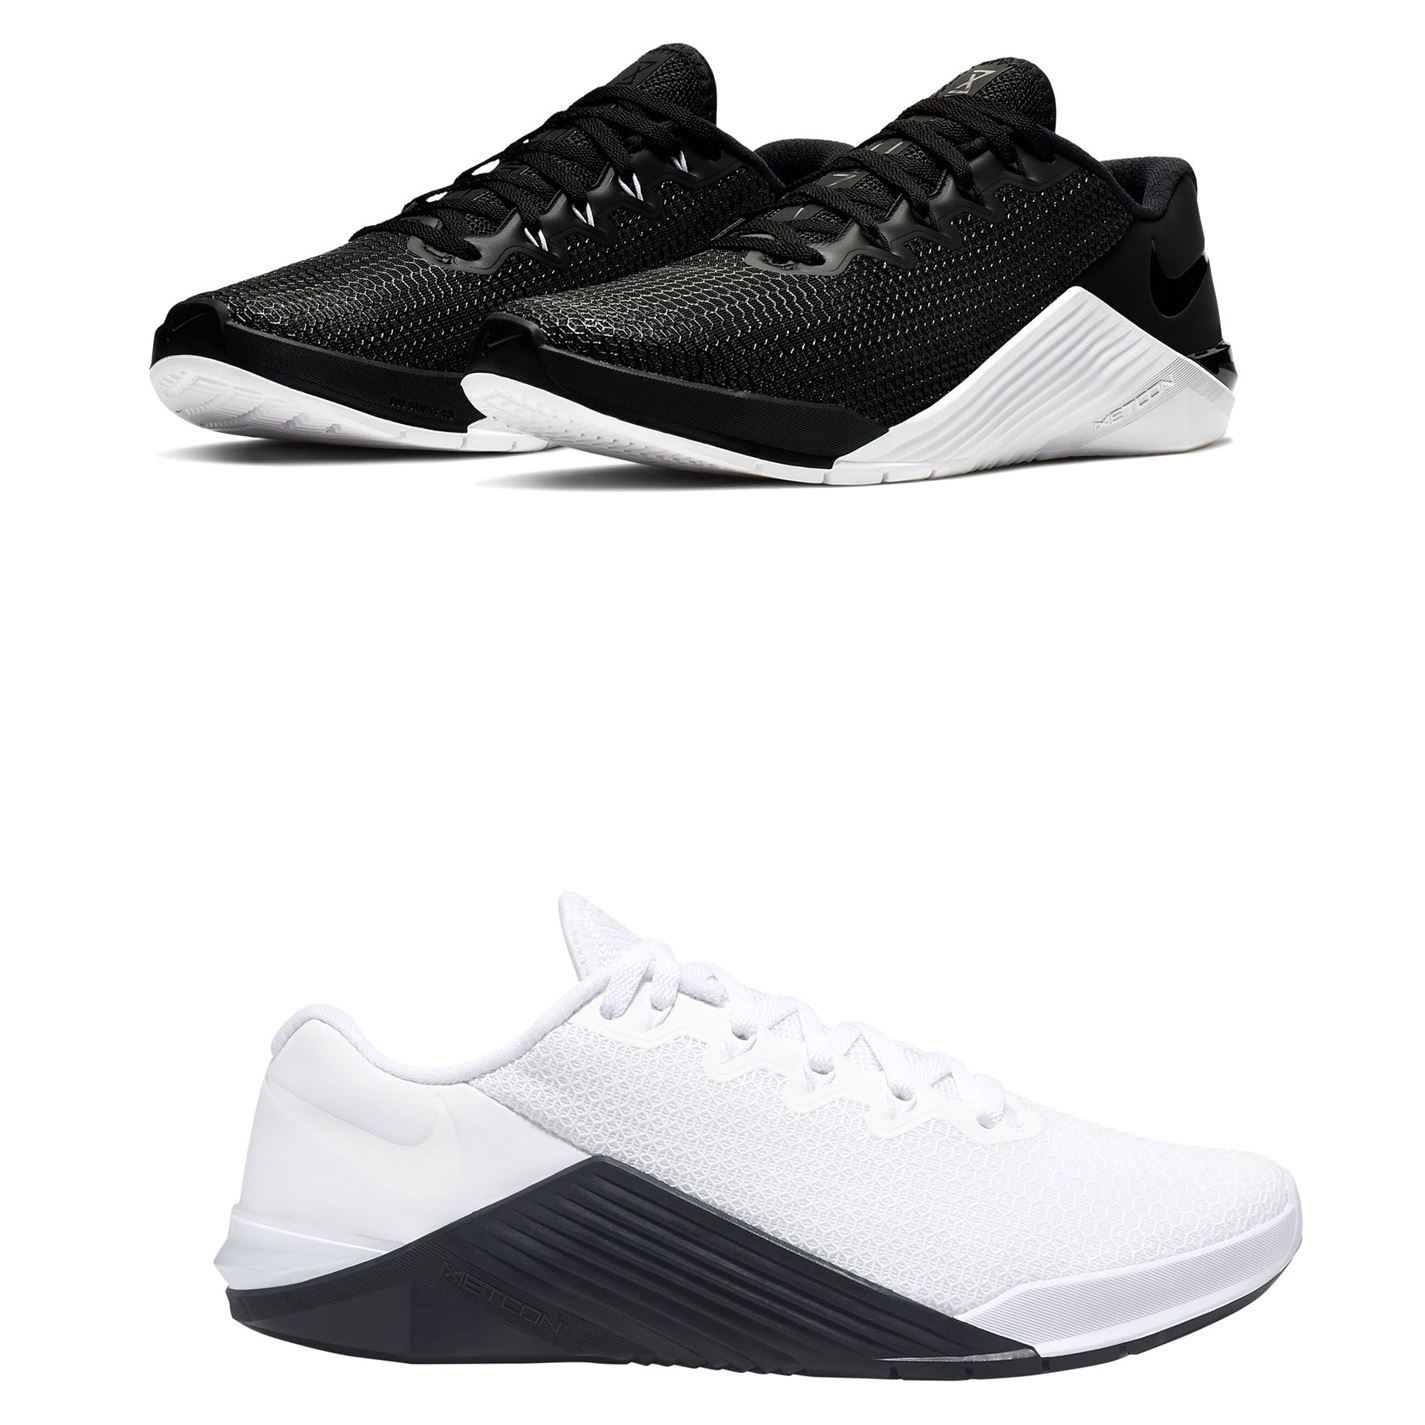 Details about Nike Metcon 5 Womens Training Shoes Trainers Ladies Footwear